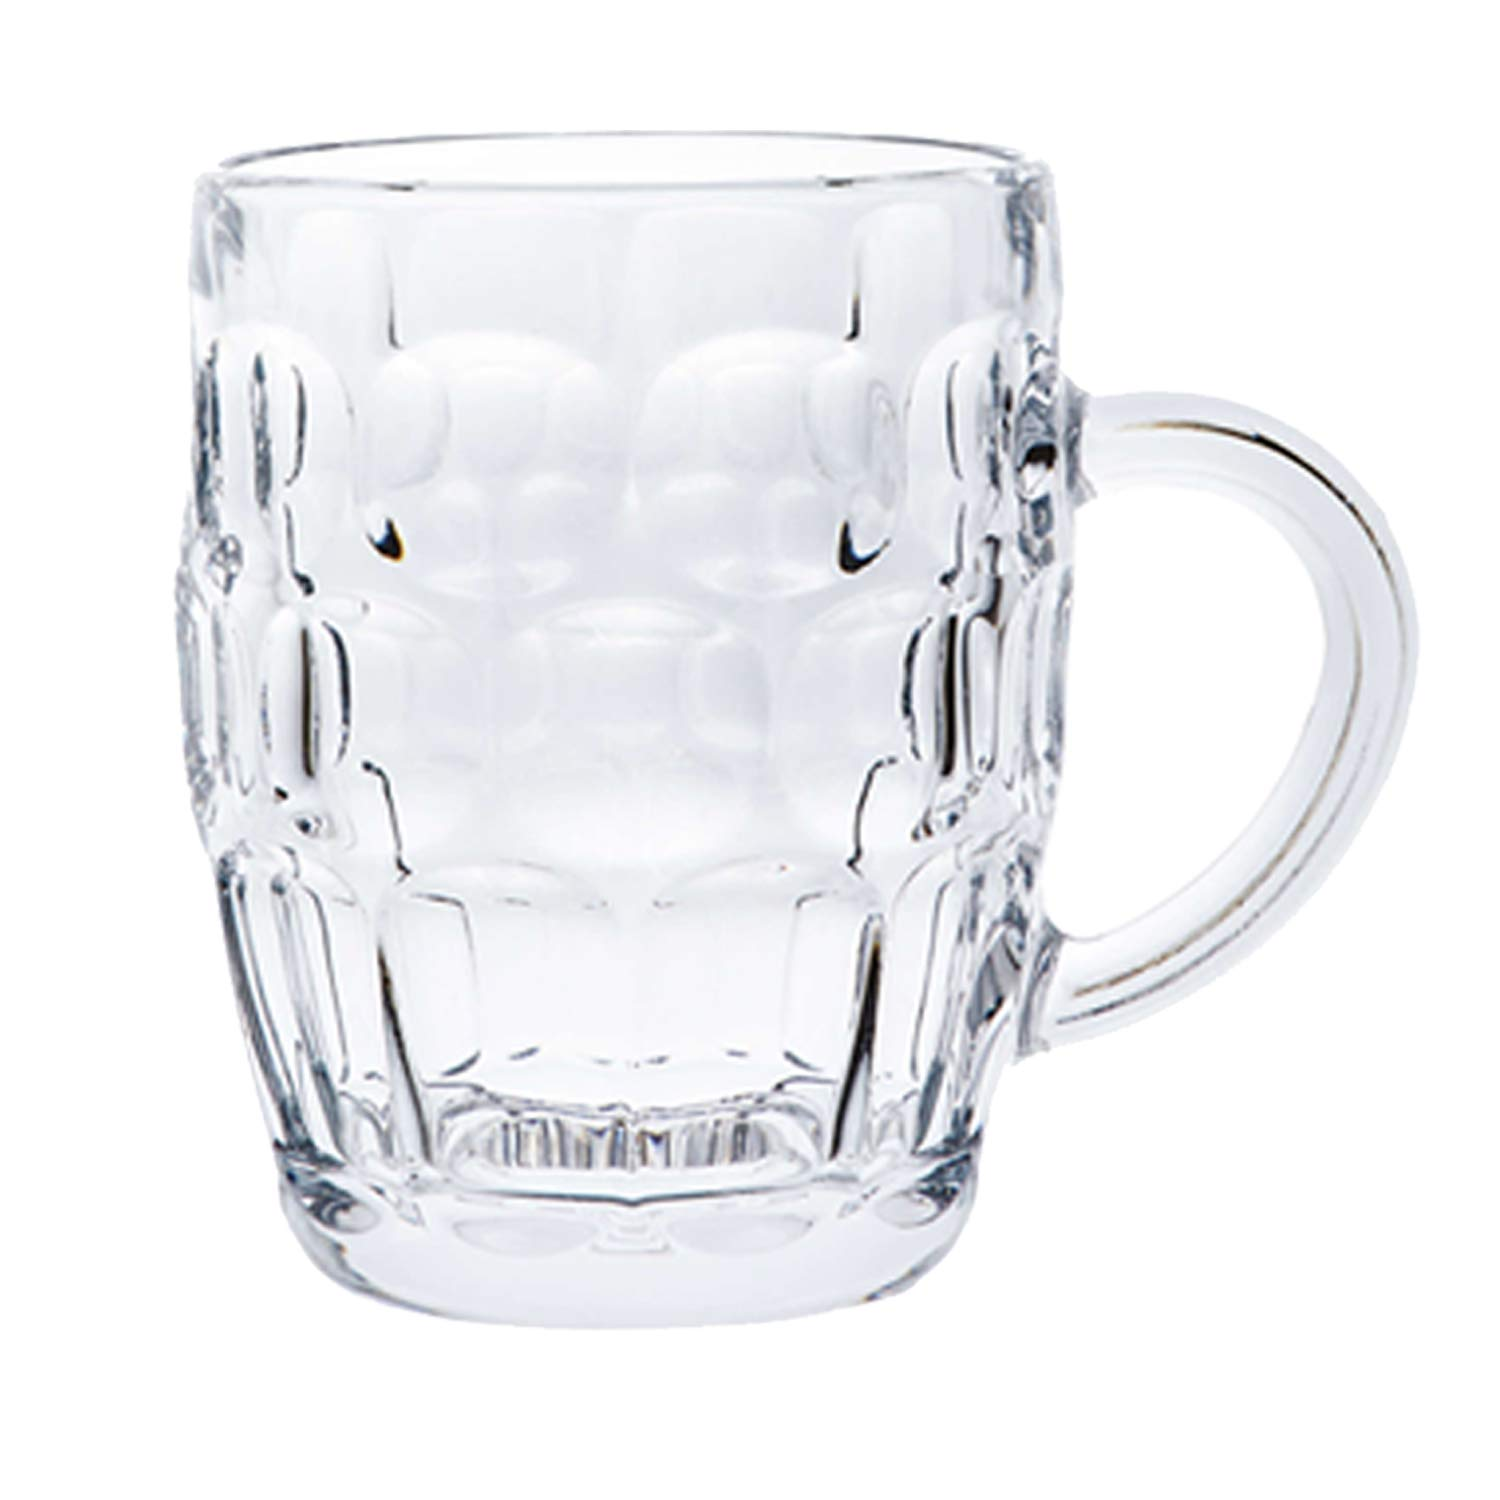 Classic Beer Pint Mugs Glass Pot Old Pub Bar Style Tankard Handle Stein Dimple (1) Guaranteed4less